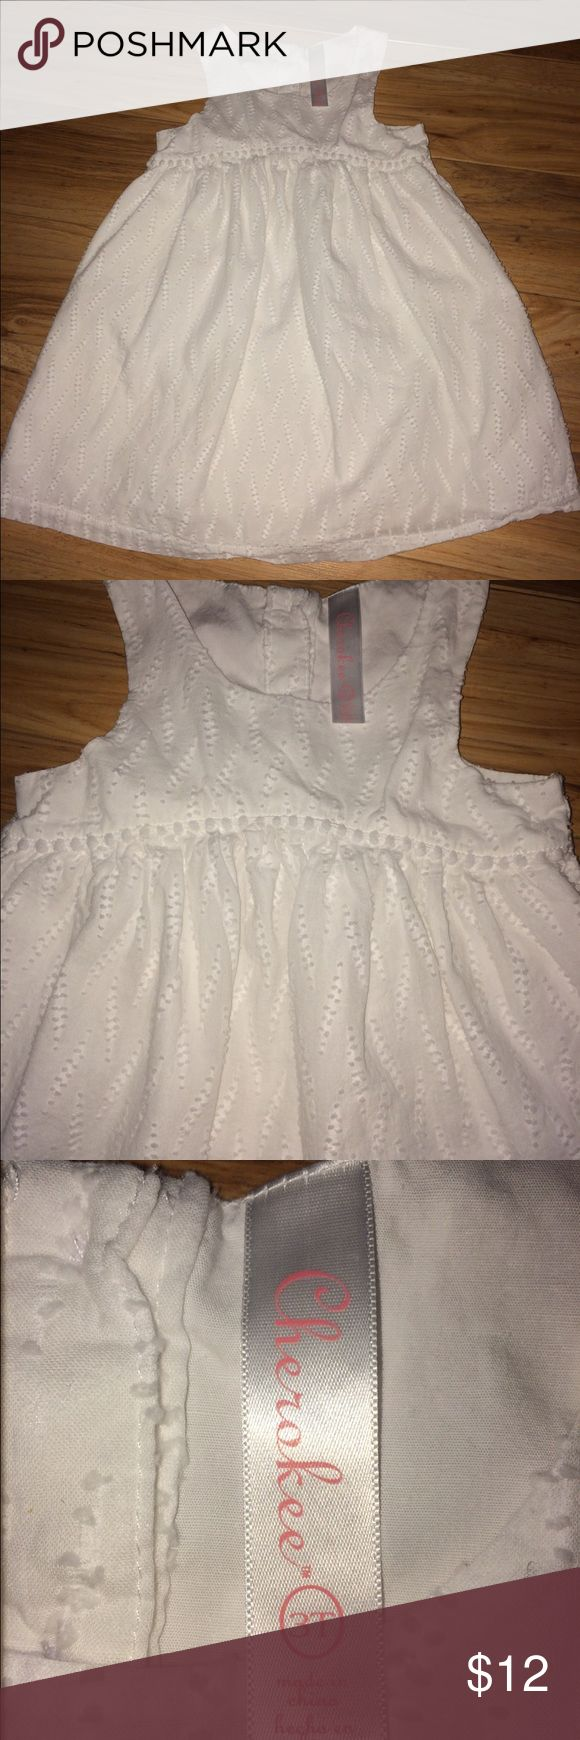 Cherokee white cotton dress Darling sleeveless 100% cotton sundress. This is Cherokee brand and in excellent used condition. There are 3 buttons in the back to make it easier to put on your baby girl! Cherokee Dresses Casual